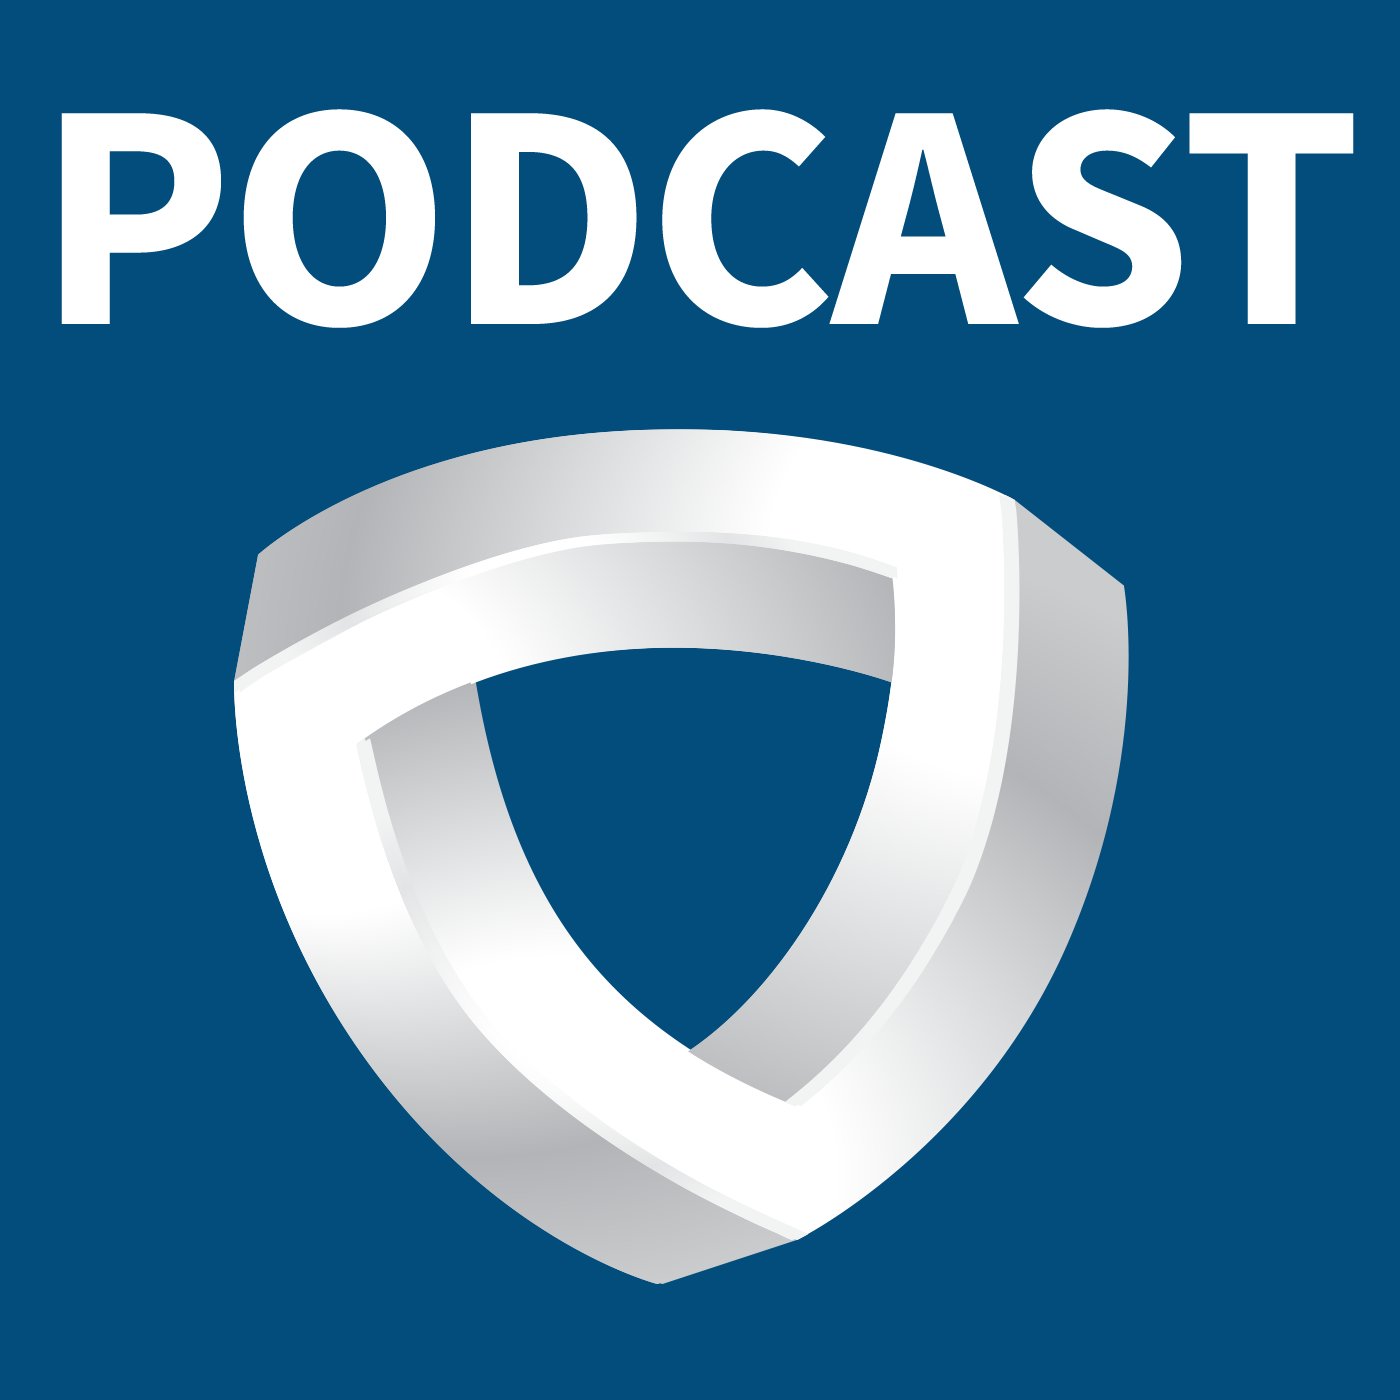 Society of Actuaries Podcasts Feed